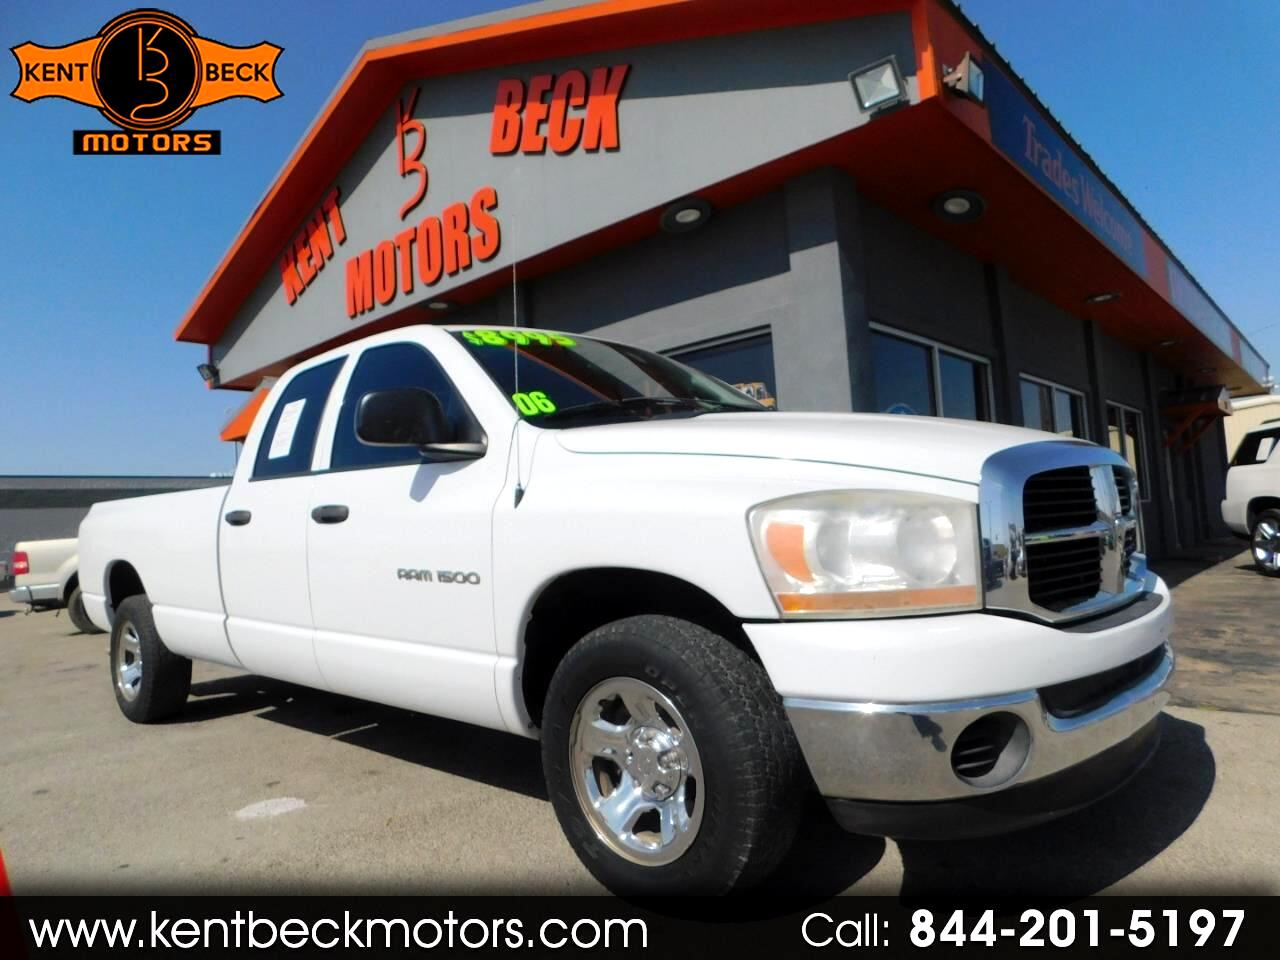 2006 Dodge Ram 1500 SLT Quad Cab Long Bed 2WD